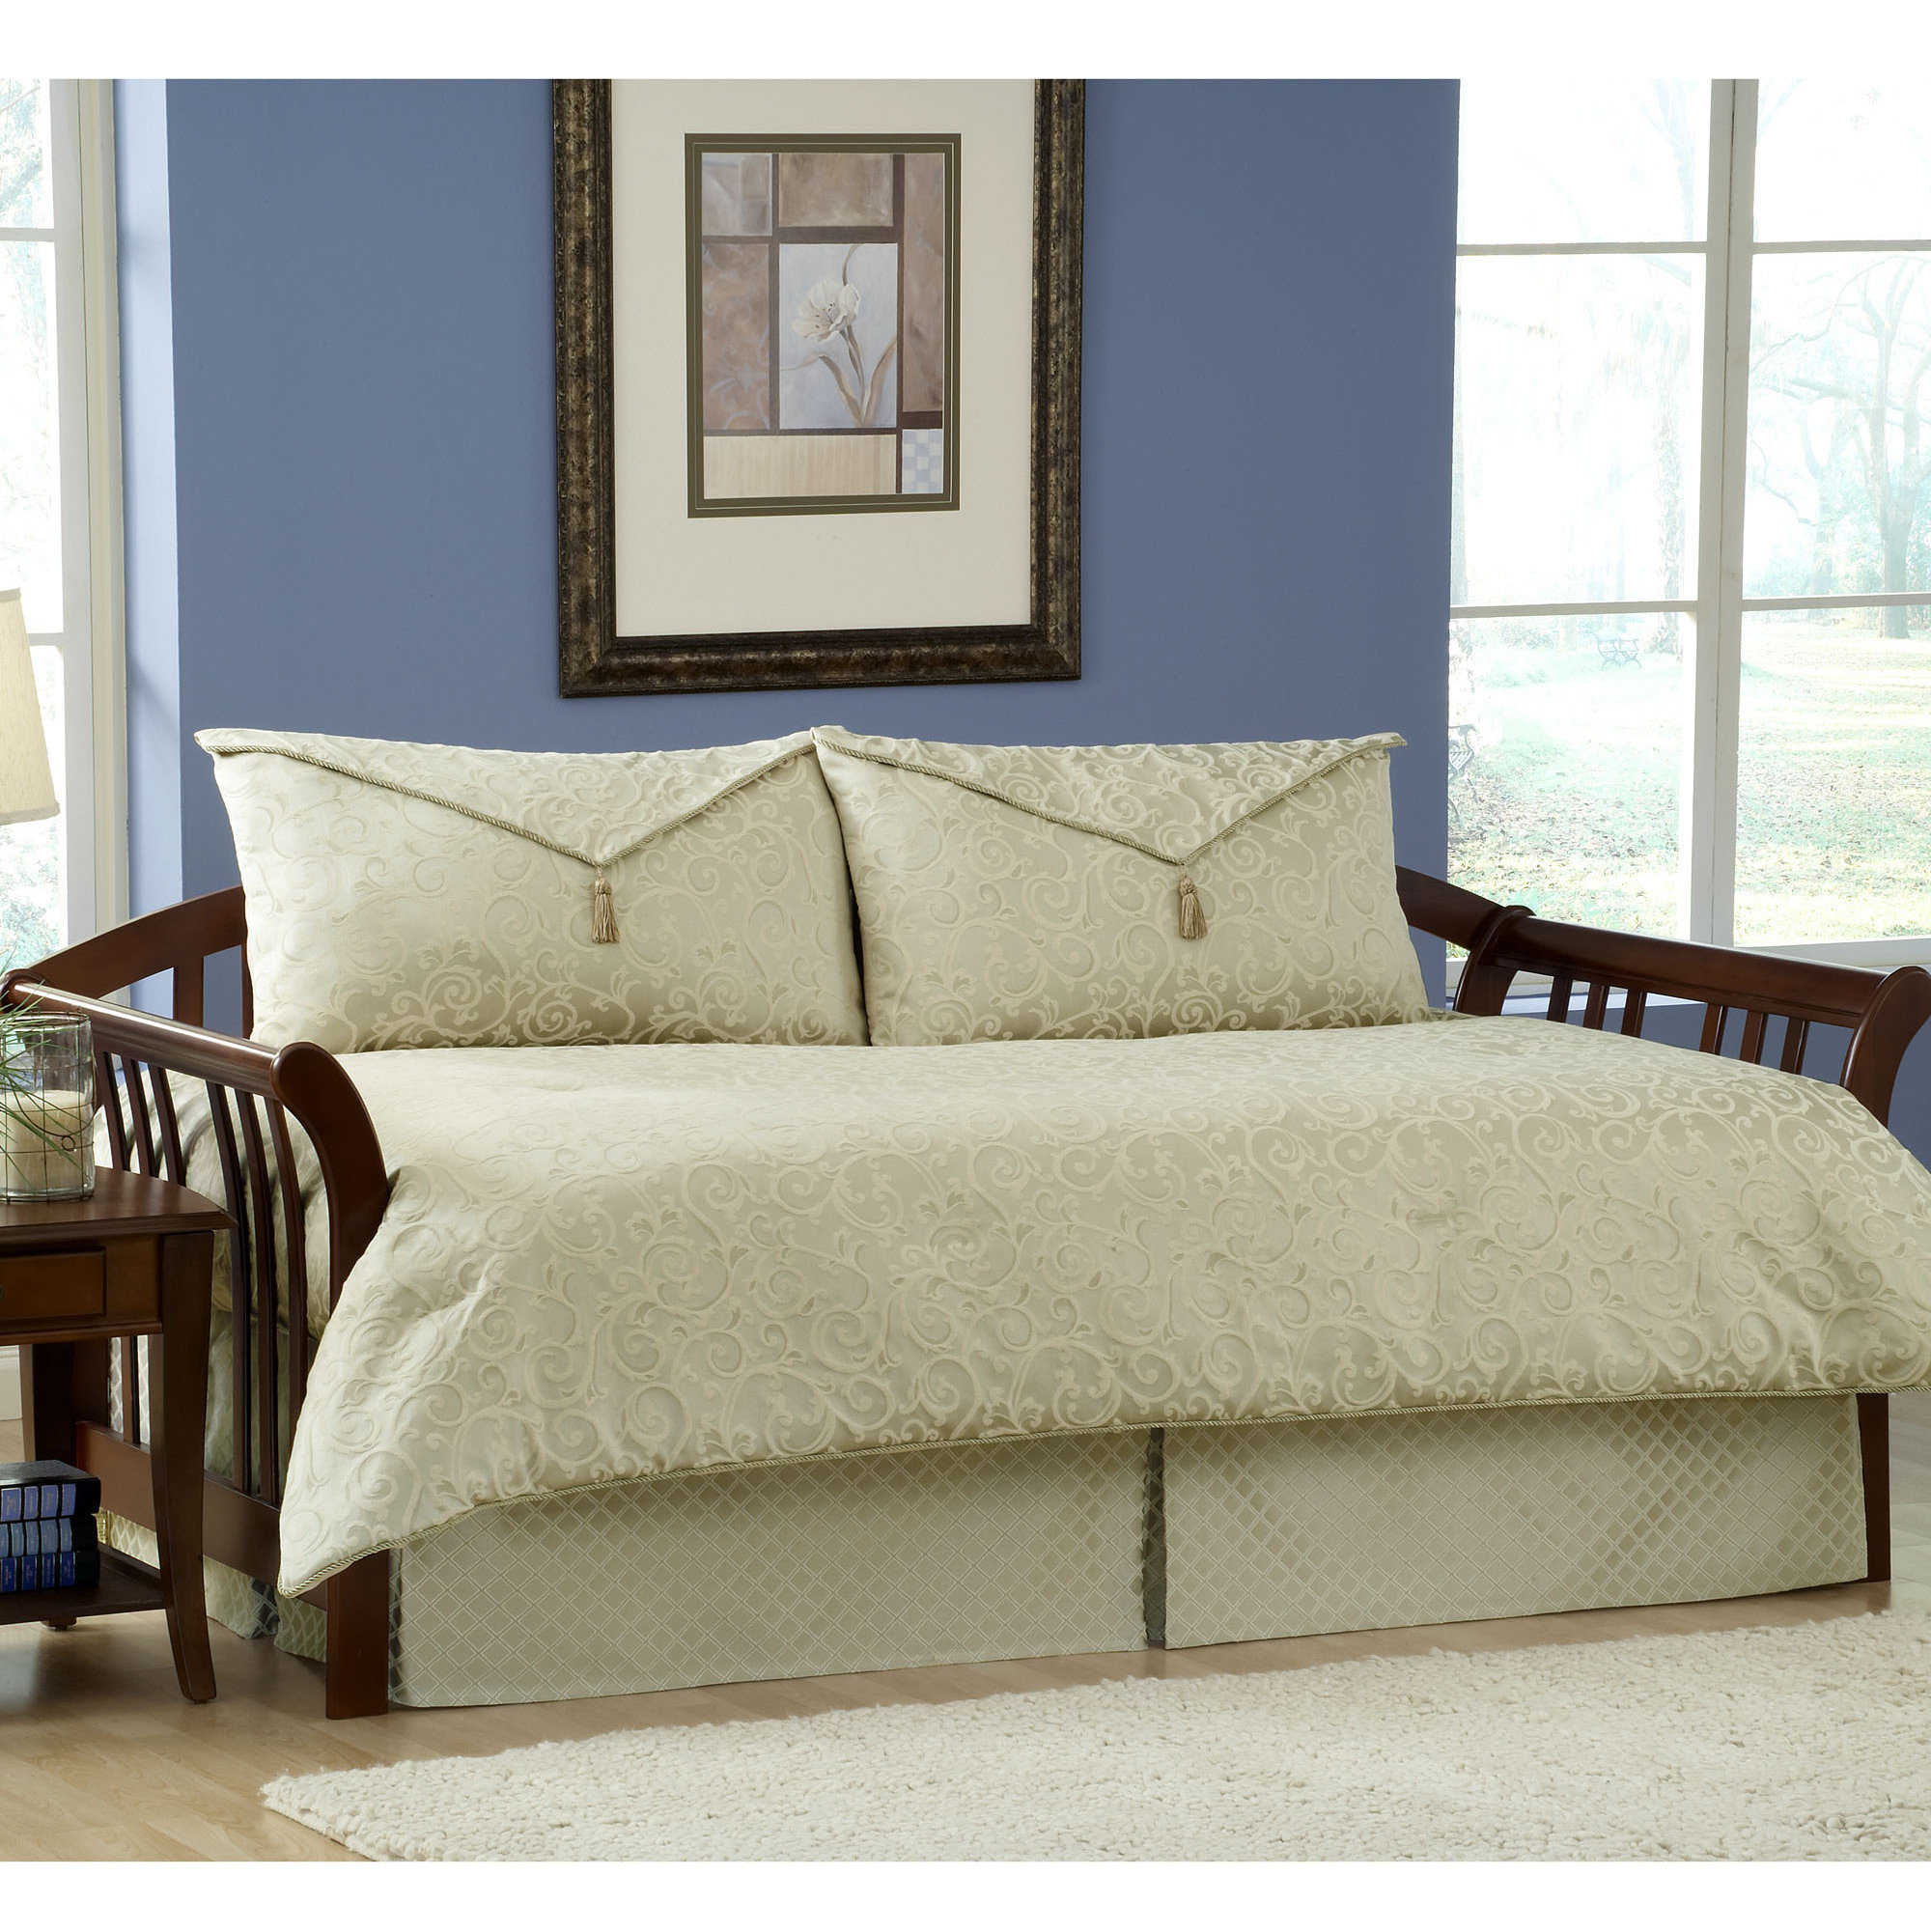 Jcpenneys Furniture: Jcpenney Bedroom Furniture